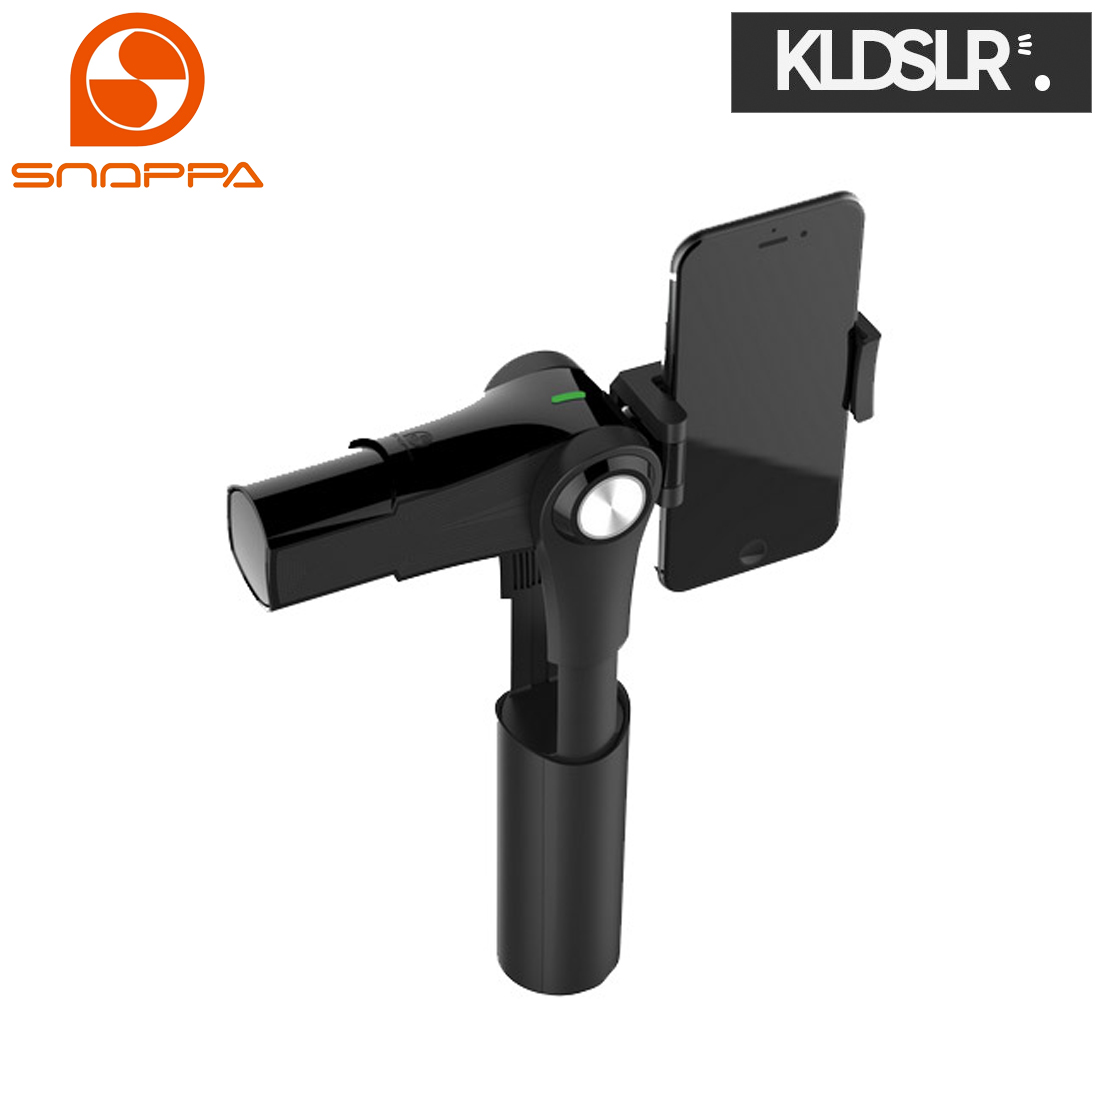 Save RM100! Snoppa M1 Innovative 3-Axis Smartphone Gimbal (Snoppa Malaysia) 1-1 Exchange warranty